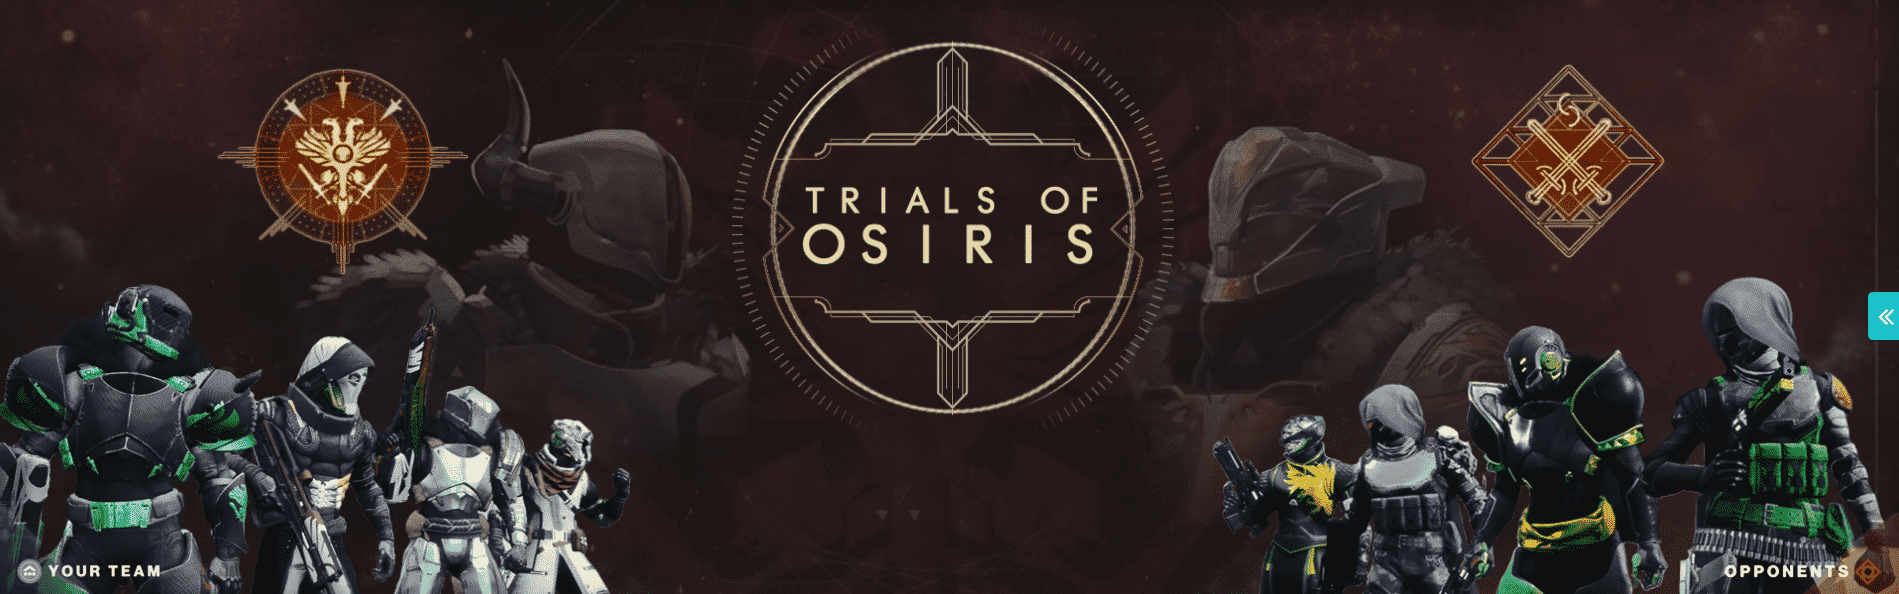 flawless trials post image